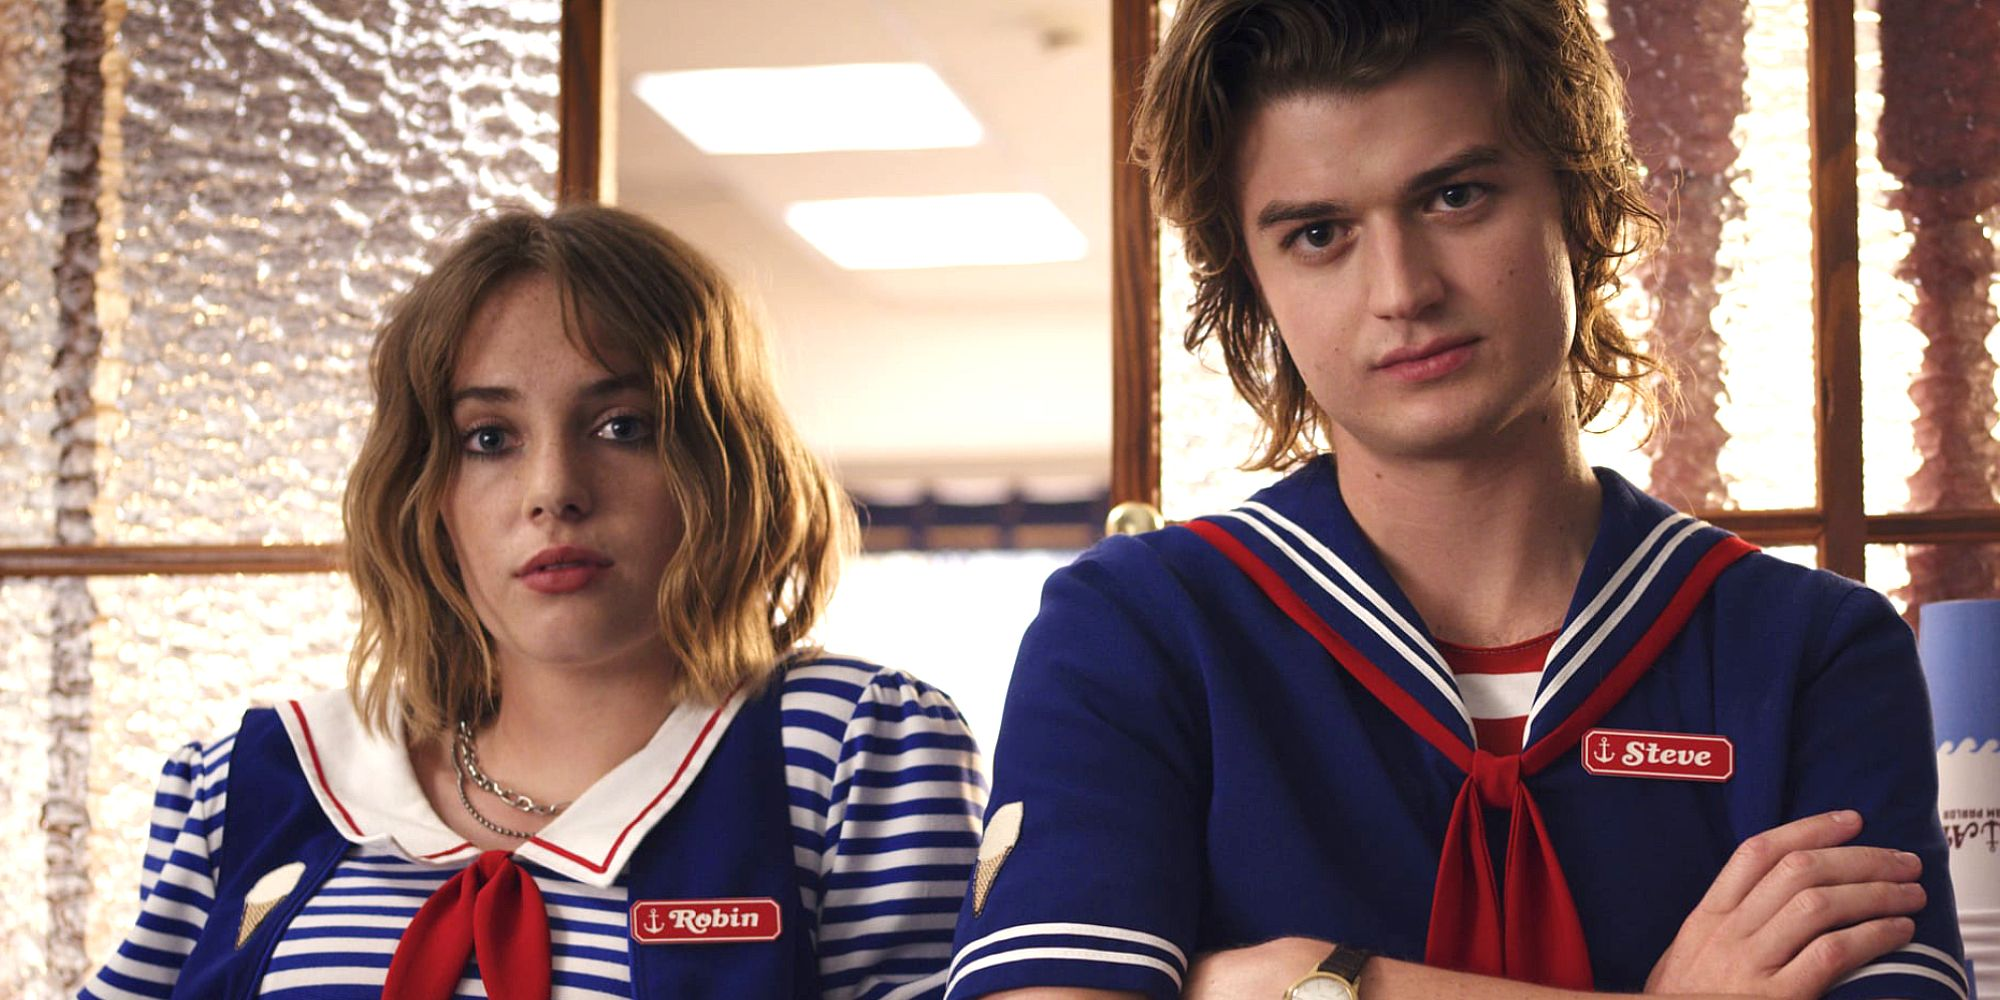 Steve & Robin Team Up With New Character in Stranger Things Season 4 Set Photos